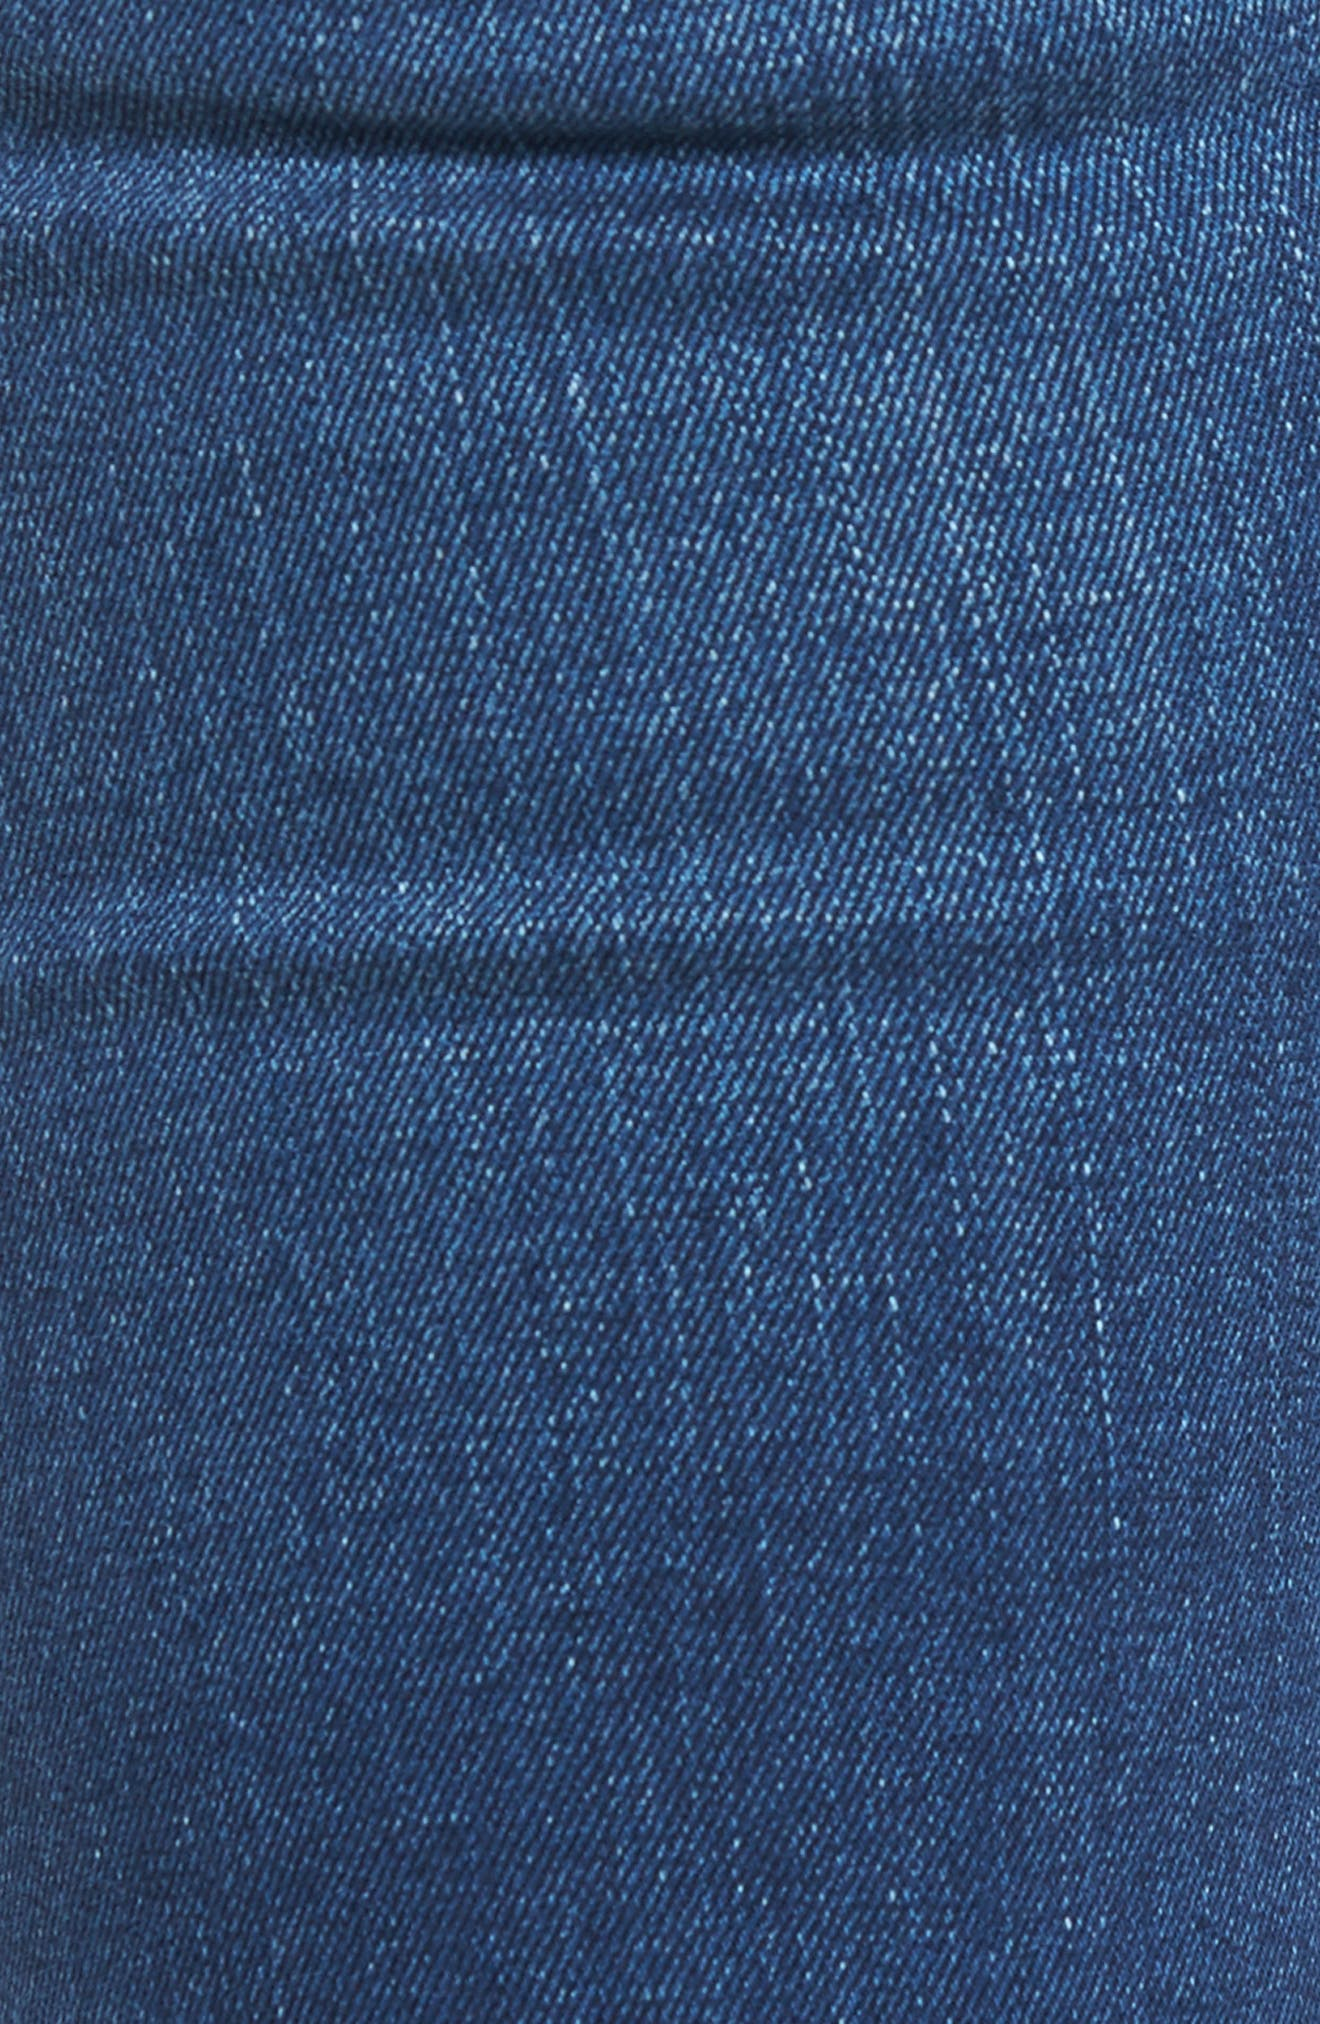 Alternate Image 5  - Hudson Jeans 'Elysian - Collin' Mid Rise Skinny Jeans (Authentic)